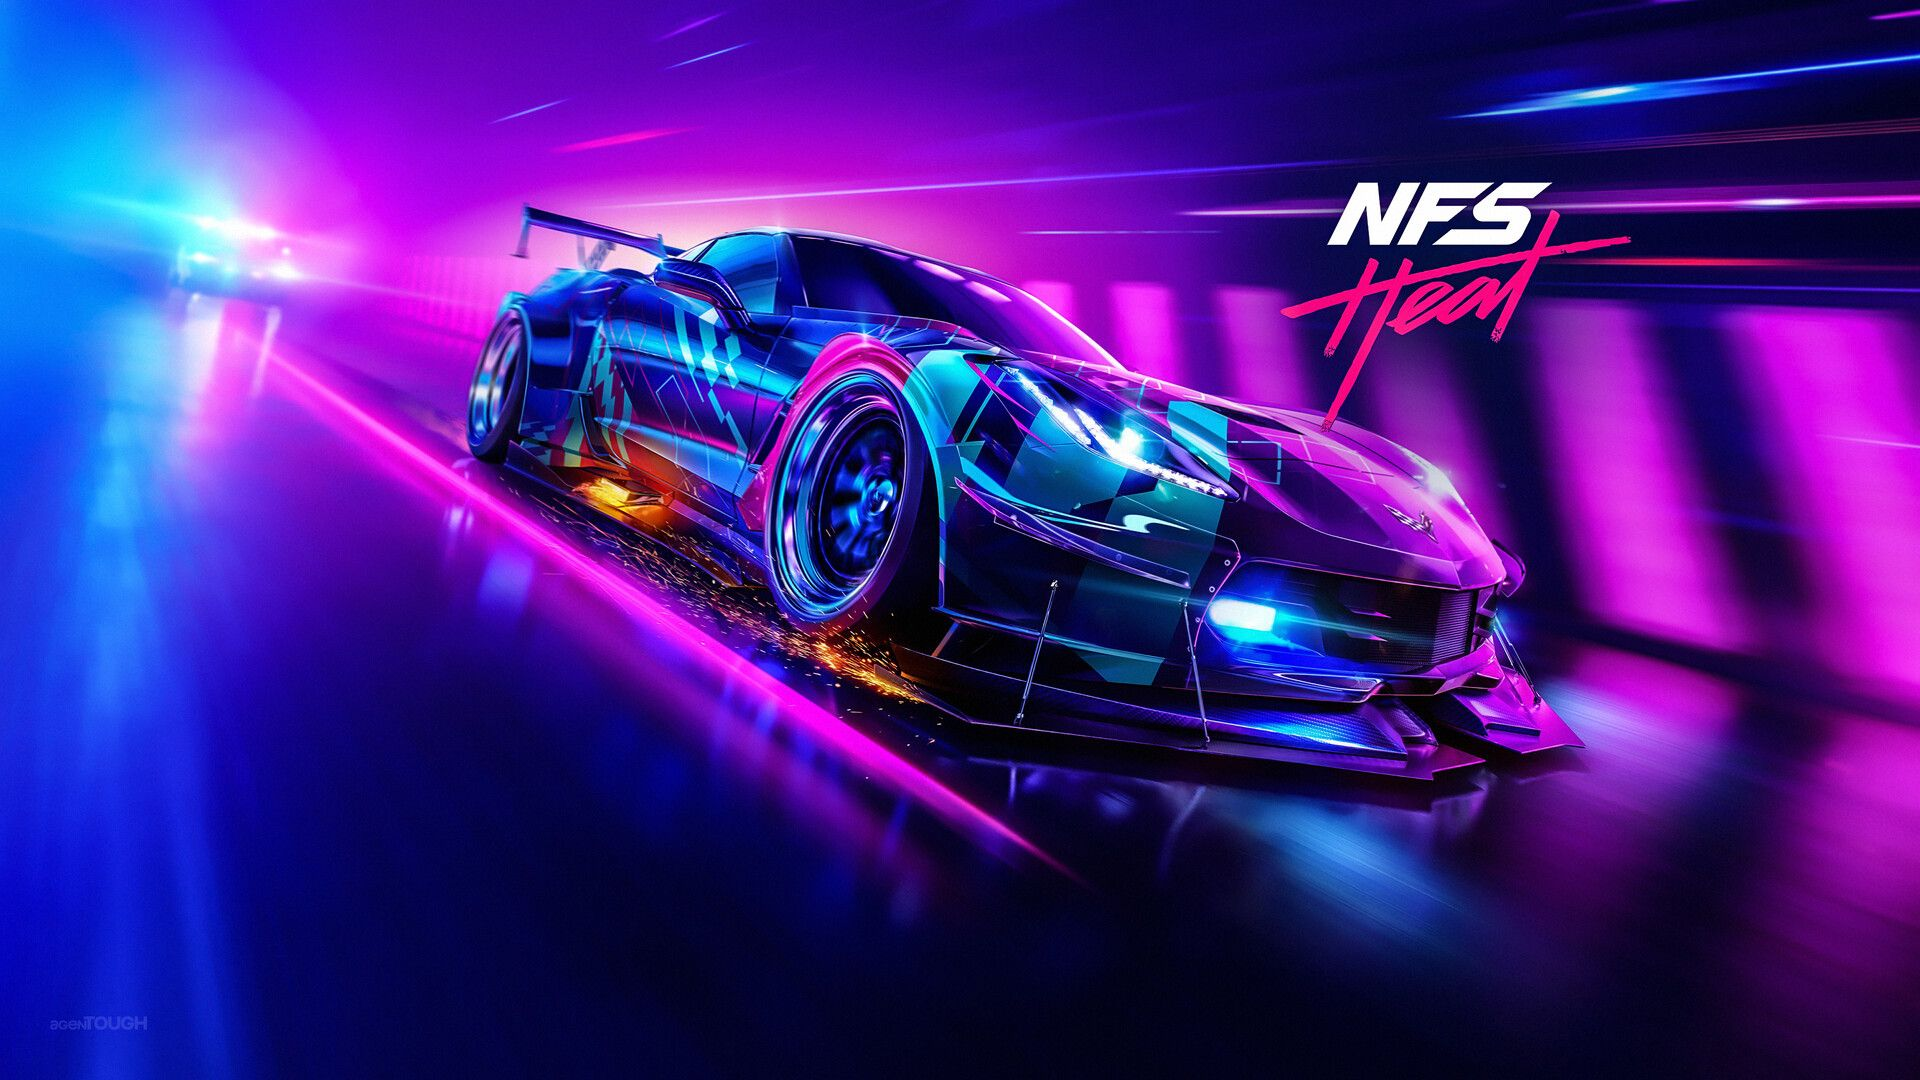 Artstation Nfs Heat 4k Wallpapers Agentough Need For Speed Games Need For Speed Speed Games